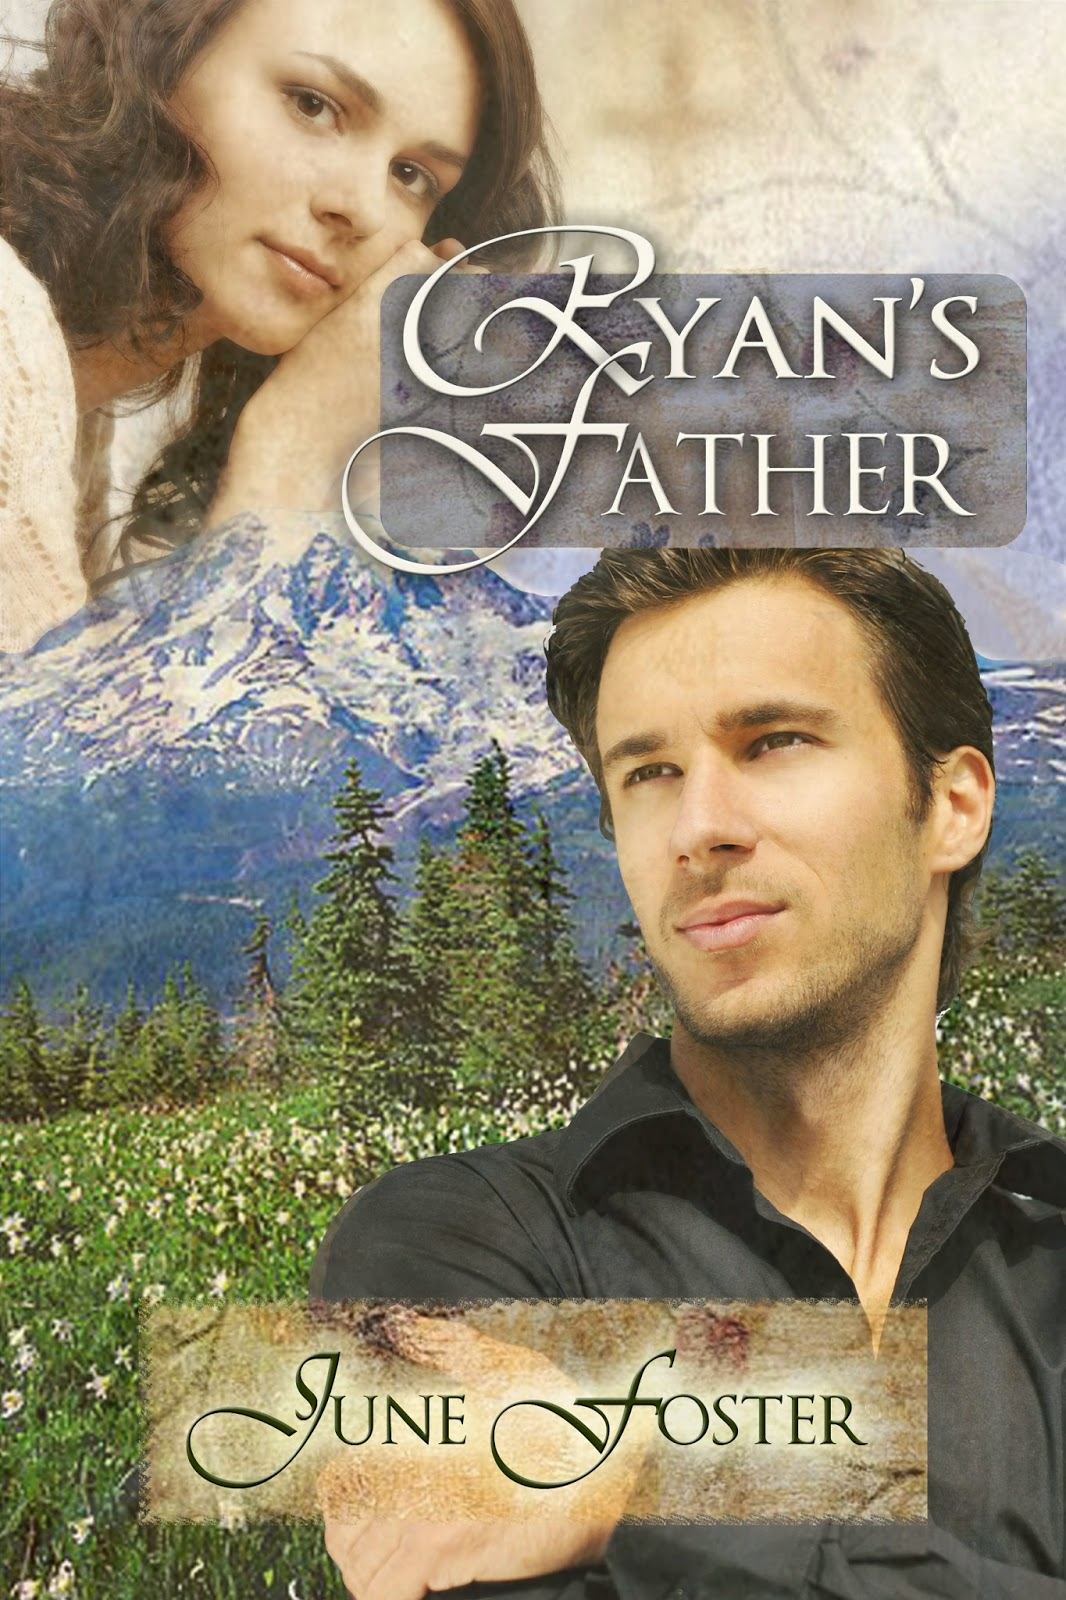 http://smile.amazon.com/Ryans-Father-June-Foster-ebook/dp/B00HUCT54I/ref=sr_1_1?ie=UTF8&qid=1429143512&sr=8-1&keywords=ryan%27s+father+foster